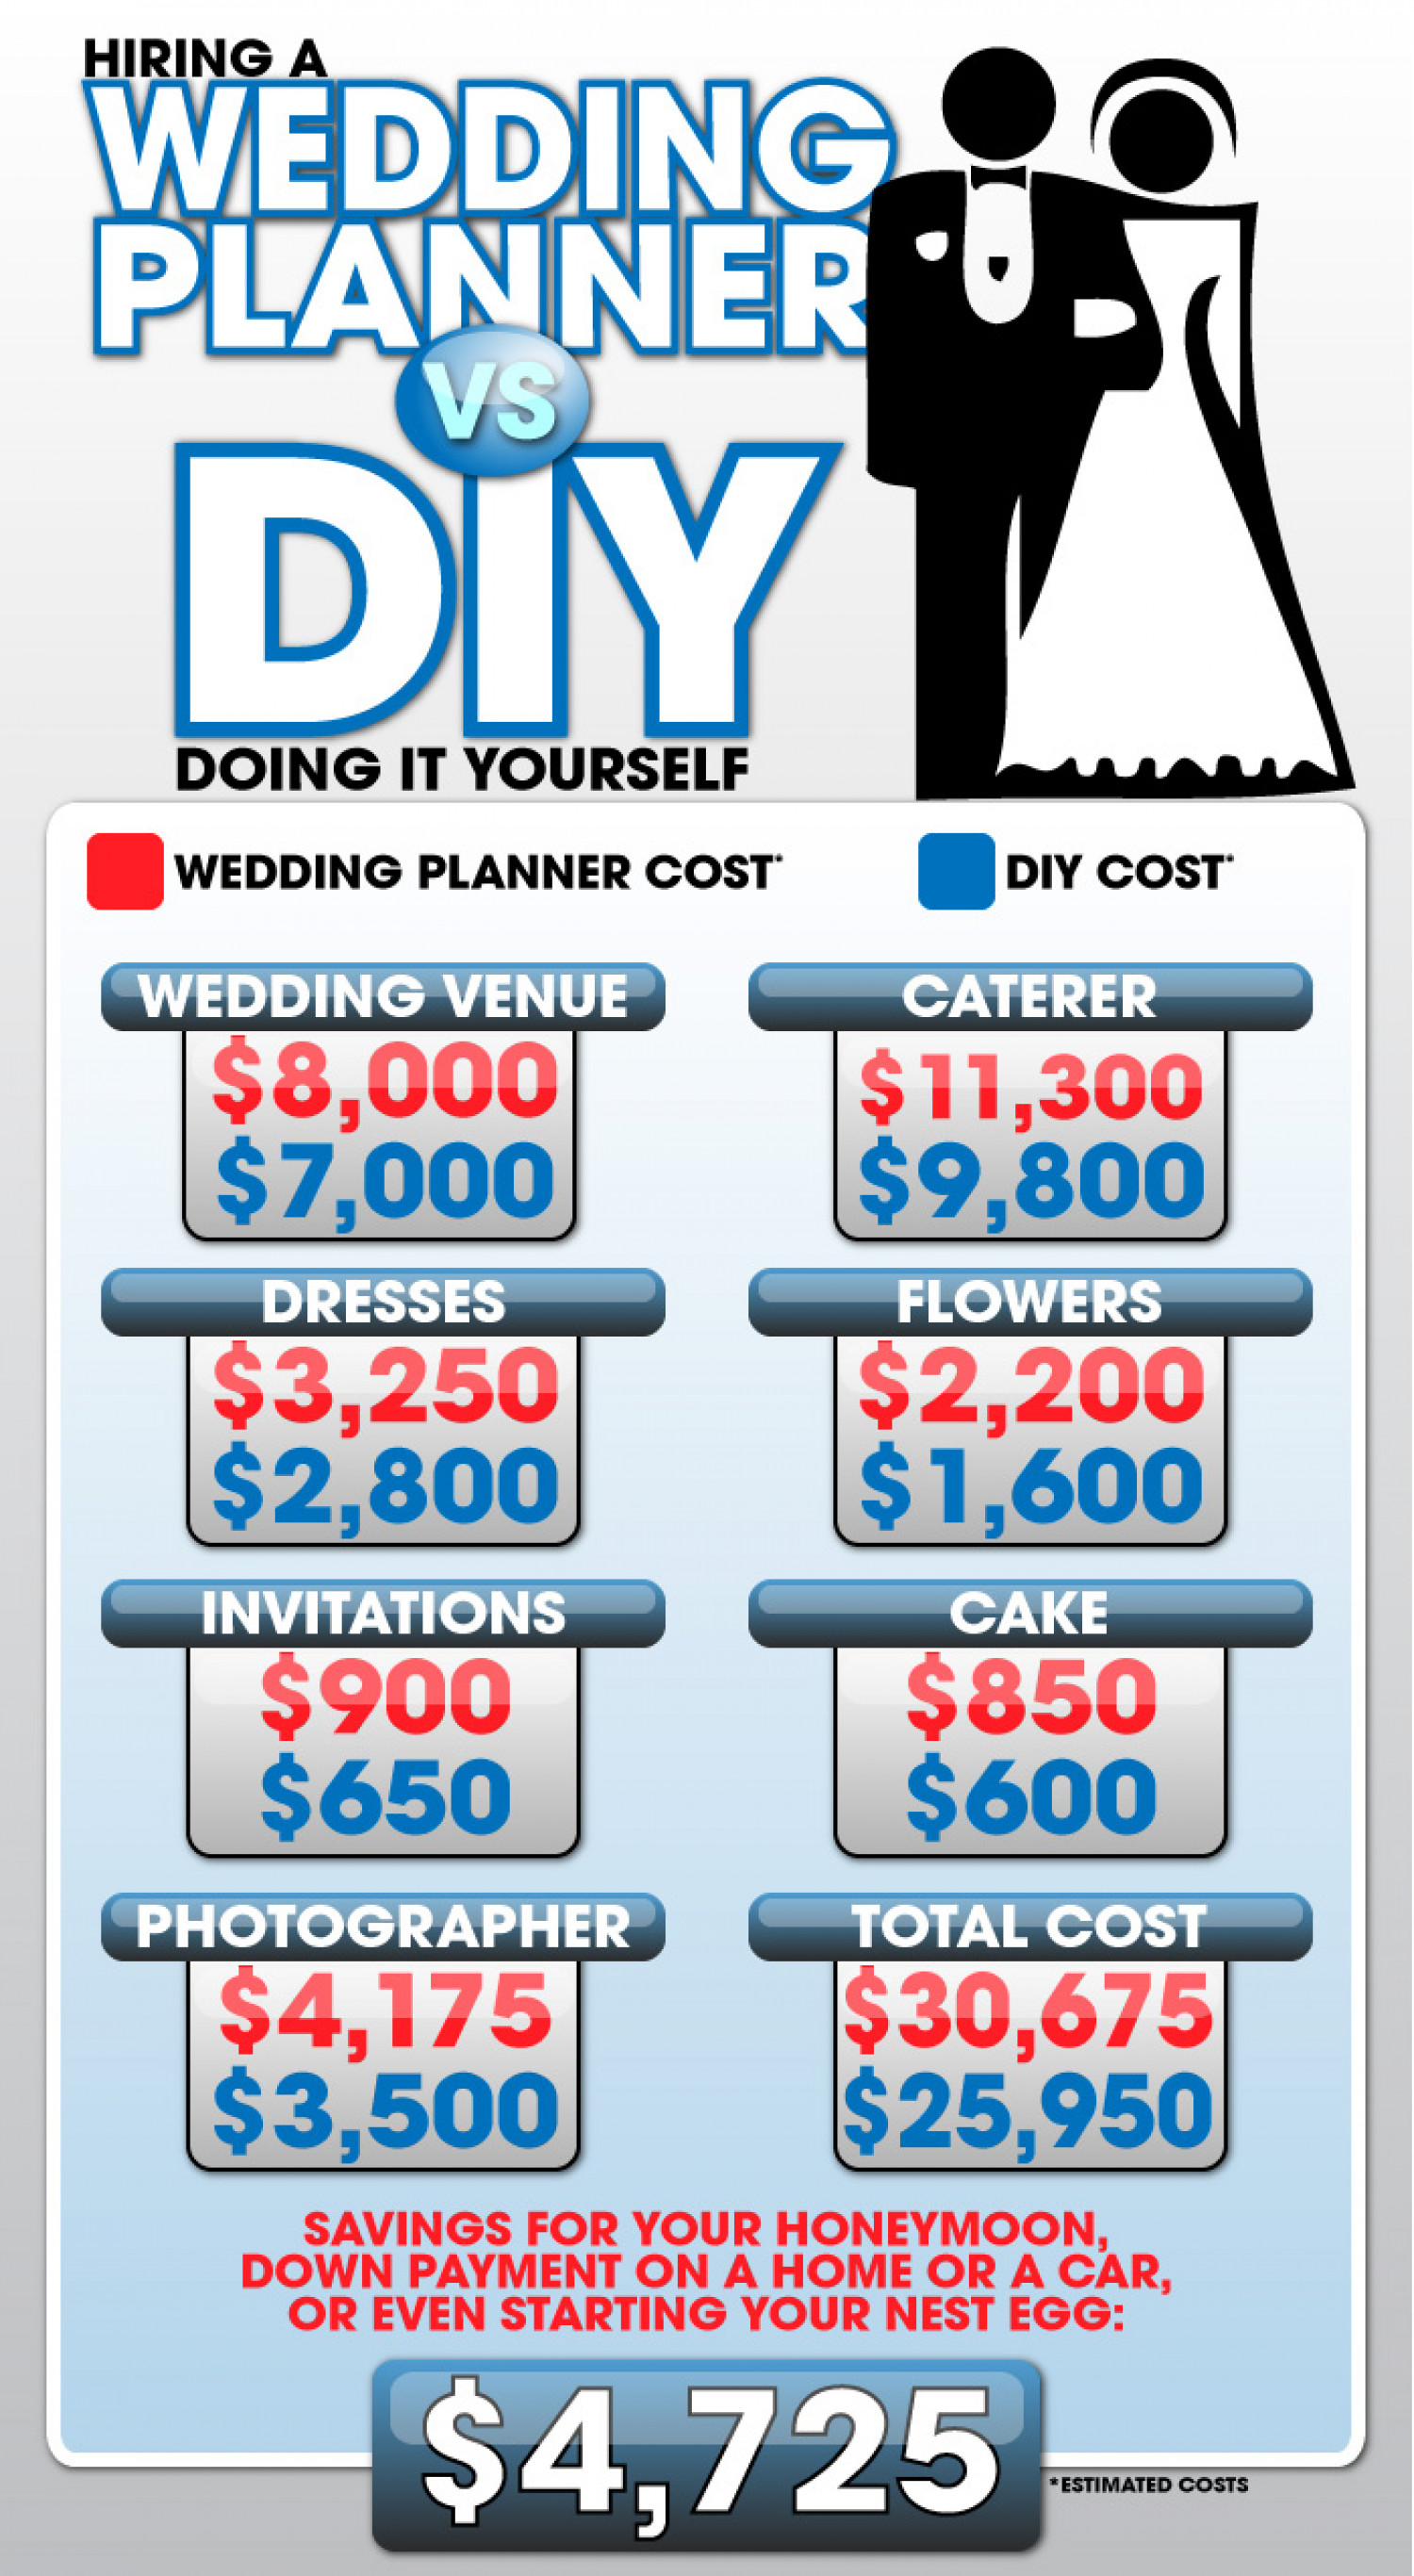 Hiring A Wedding Day Planner Vs Diy Infographic